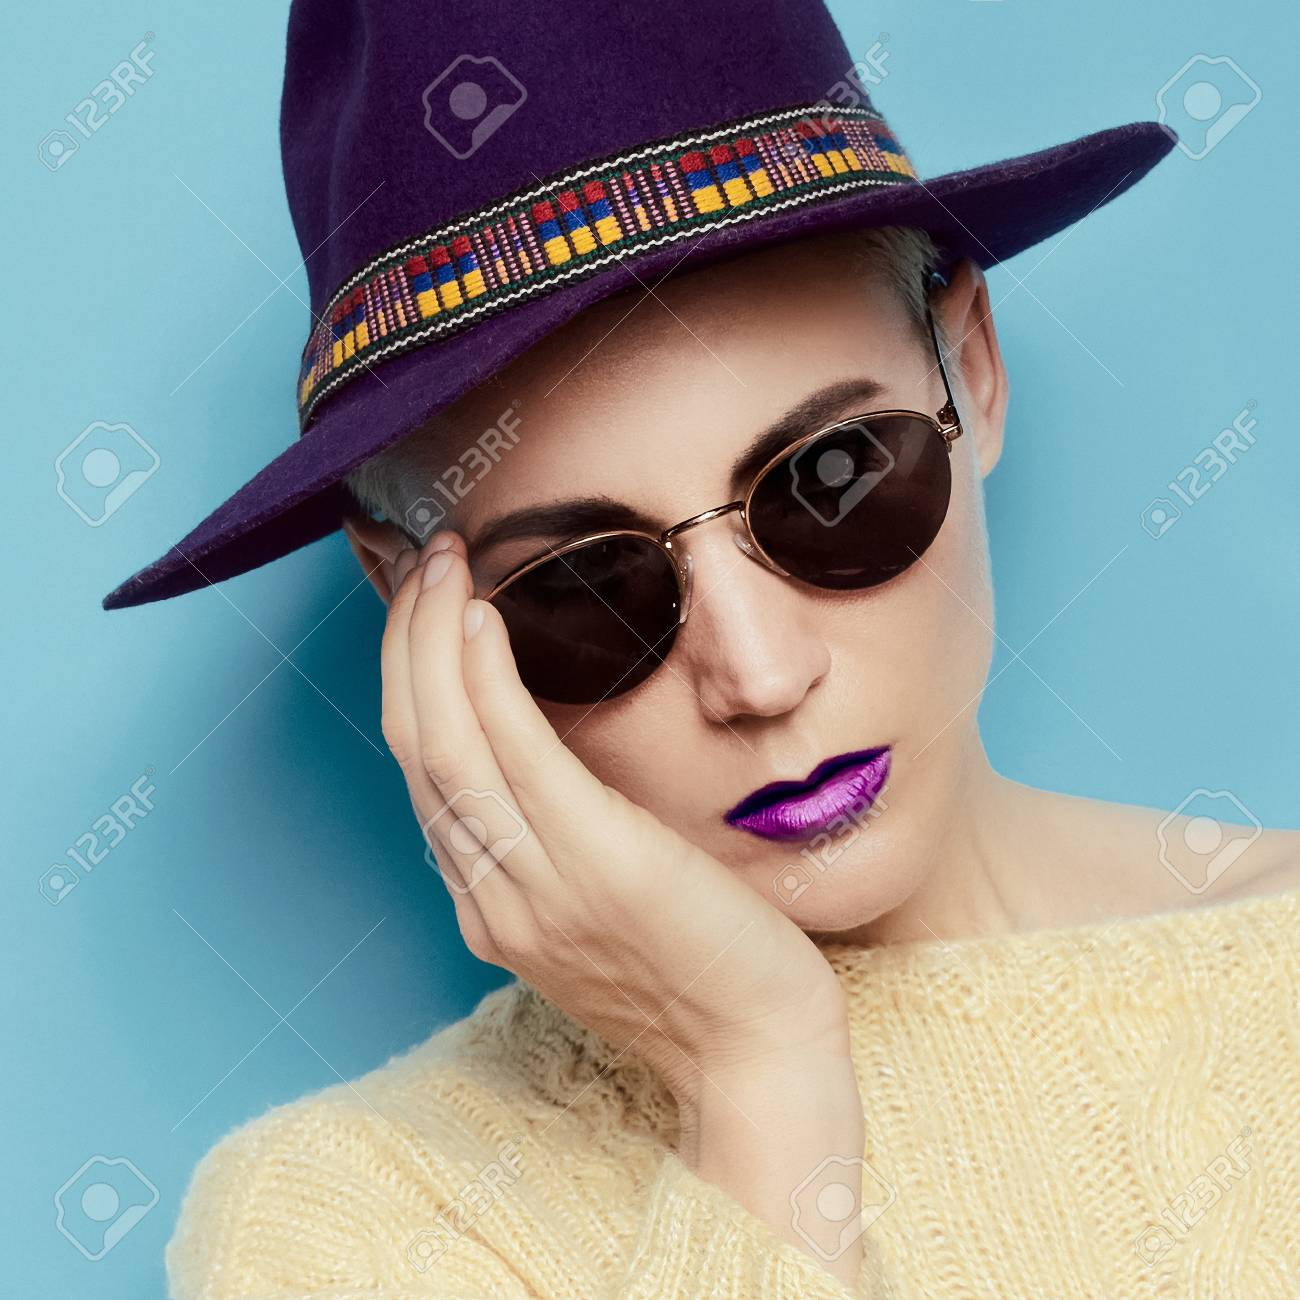 4be82e0aa51f Stylish Model In The Hat Country And Vintage Glasses Stock Photo ...